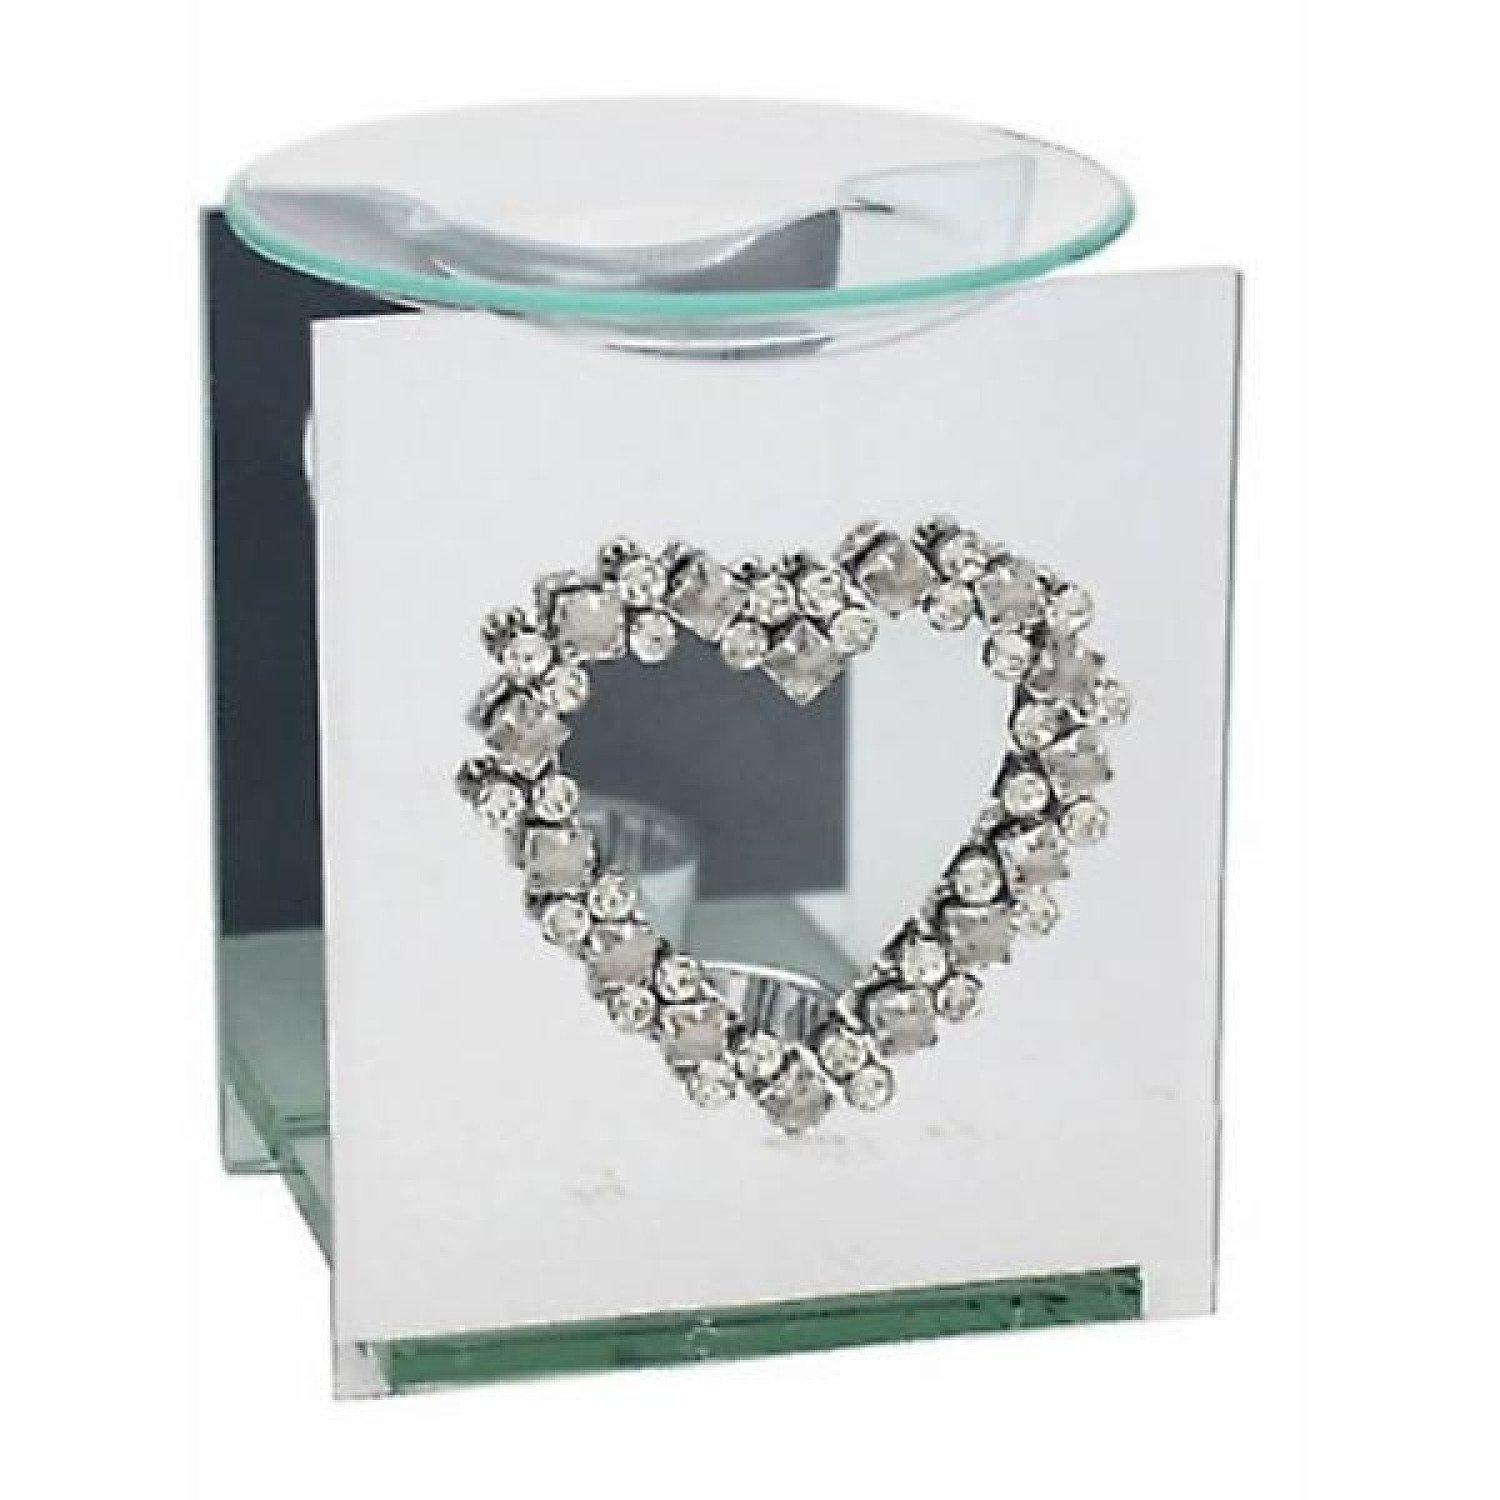 Mirror Diamante Wax Melter With Diamante Heart Design